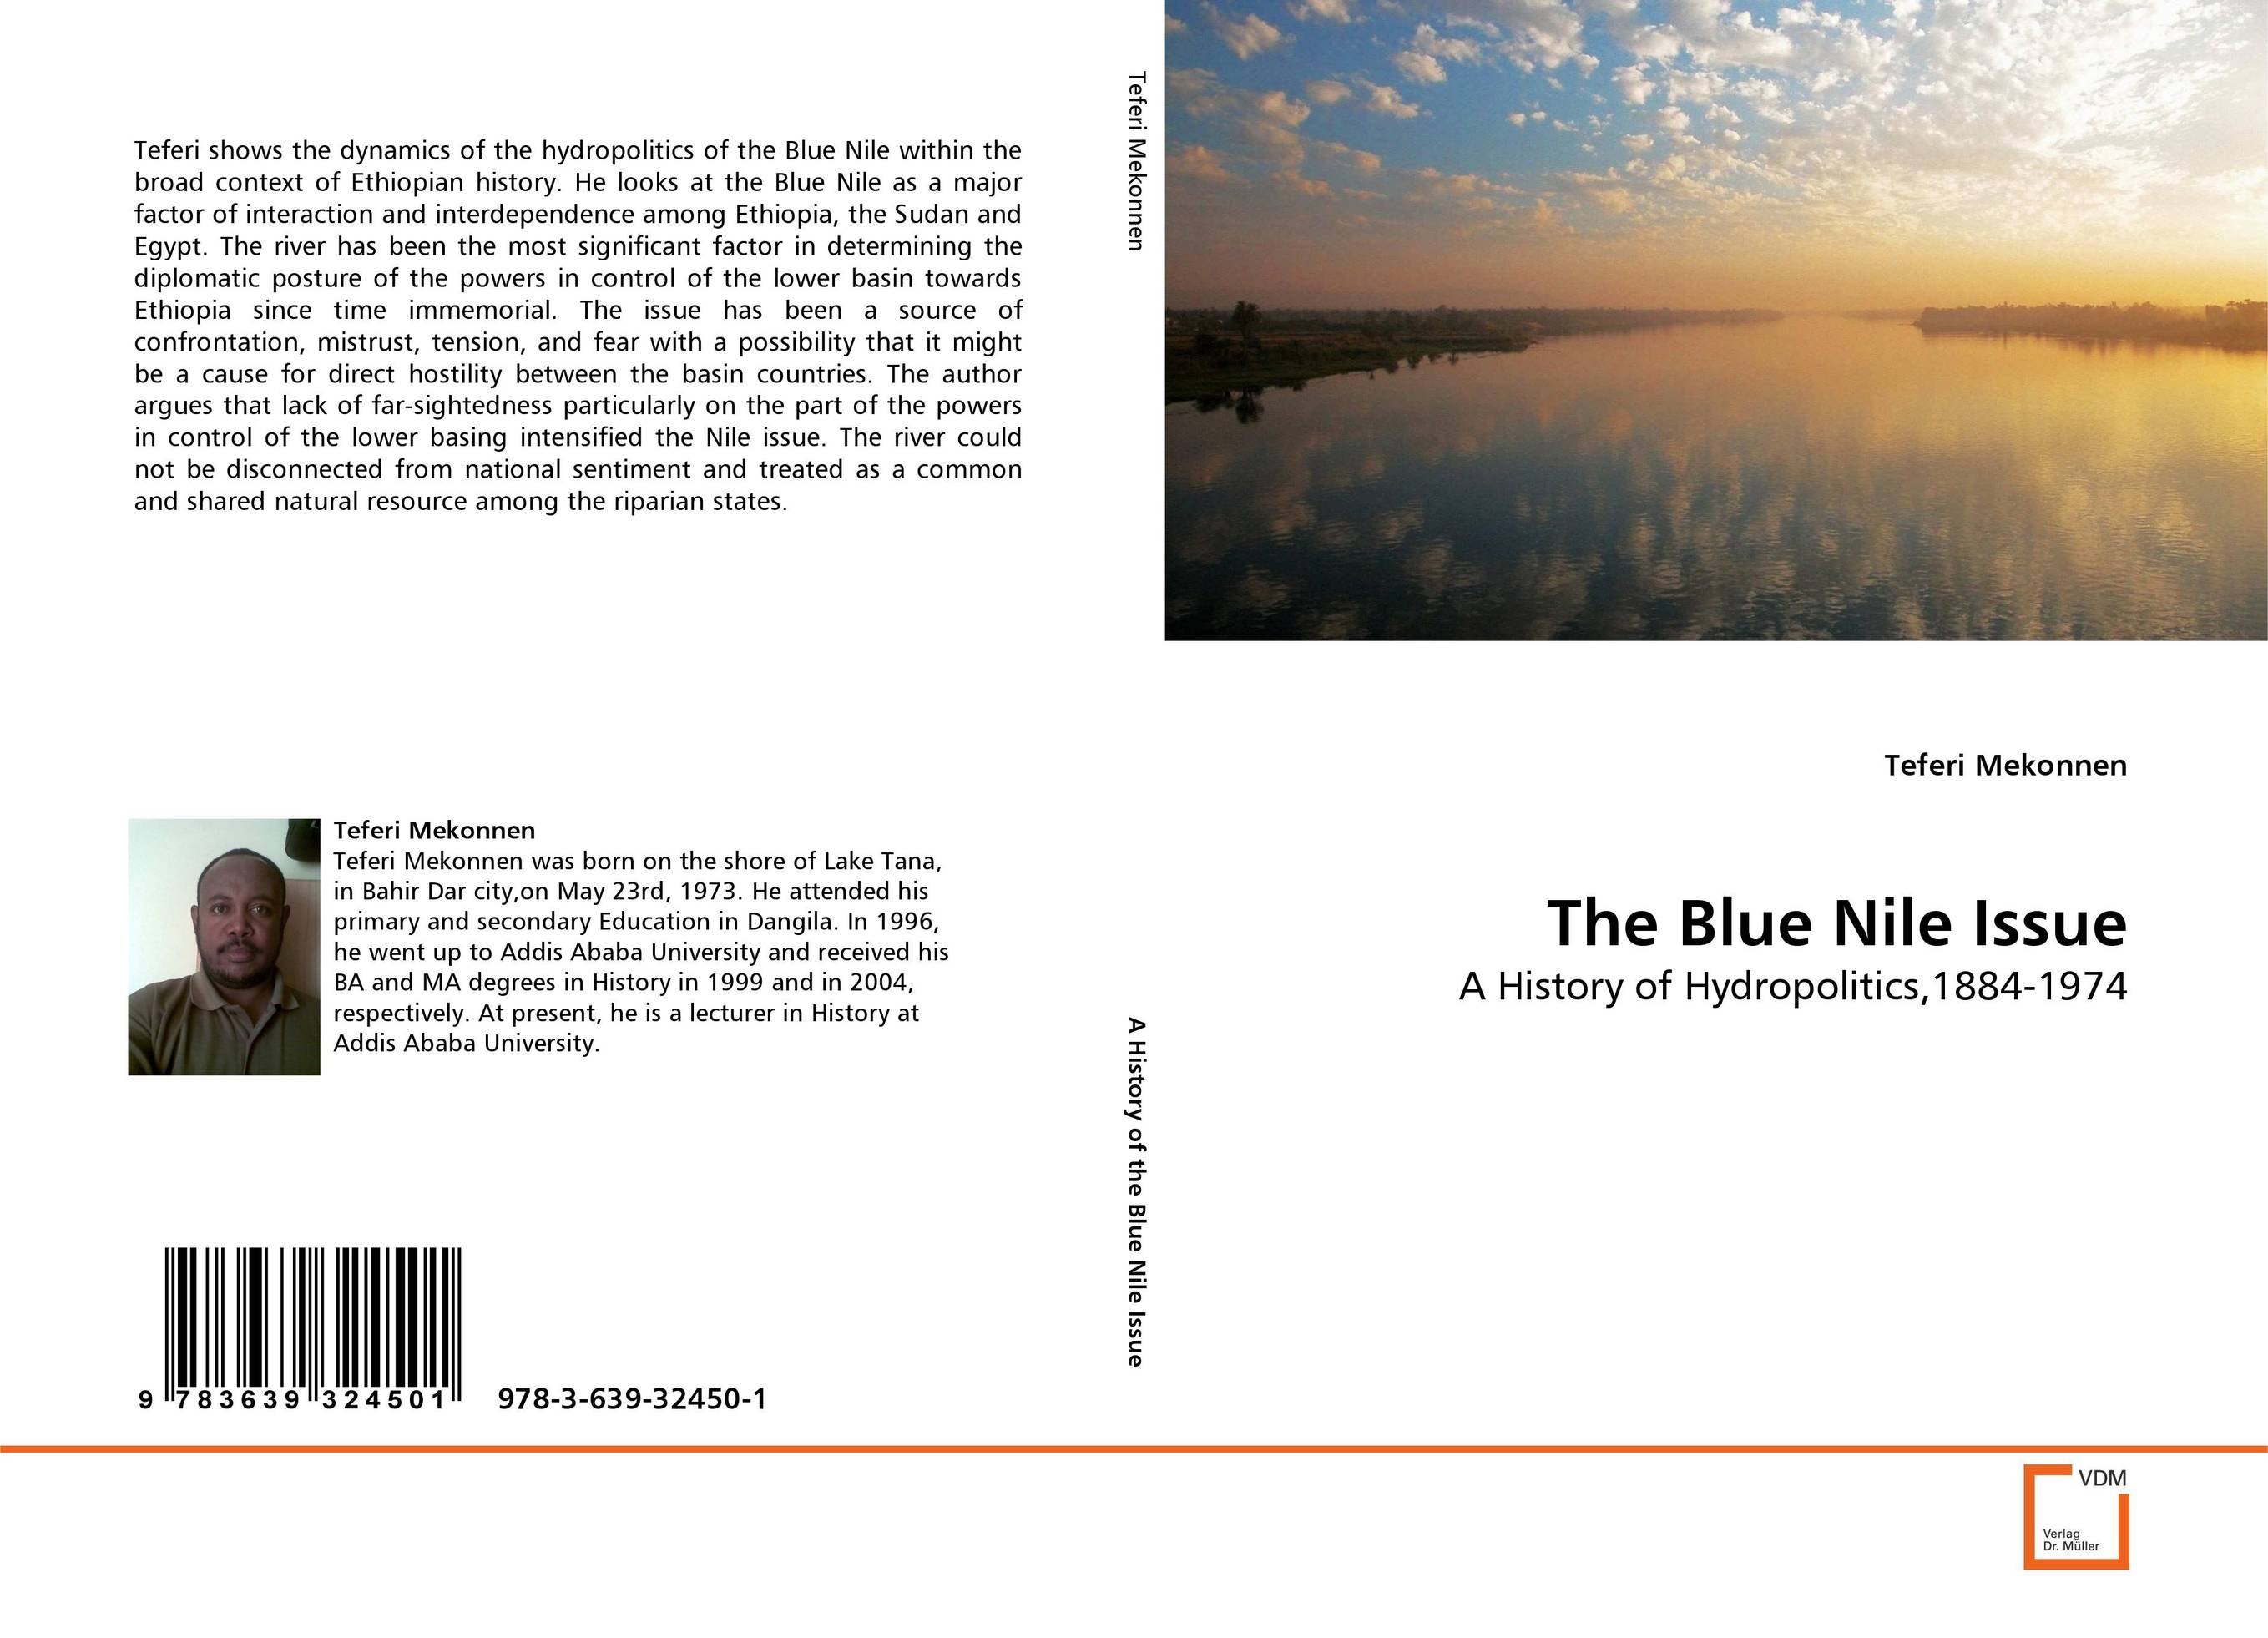 The Blue Nile Issue